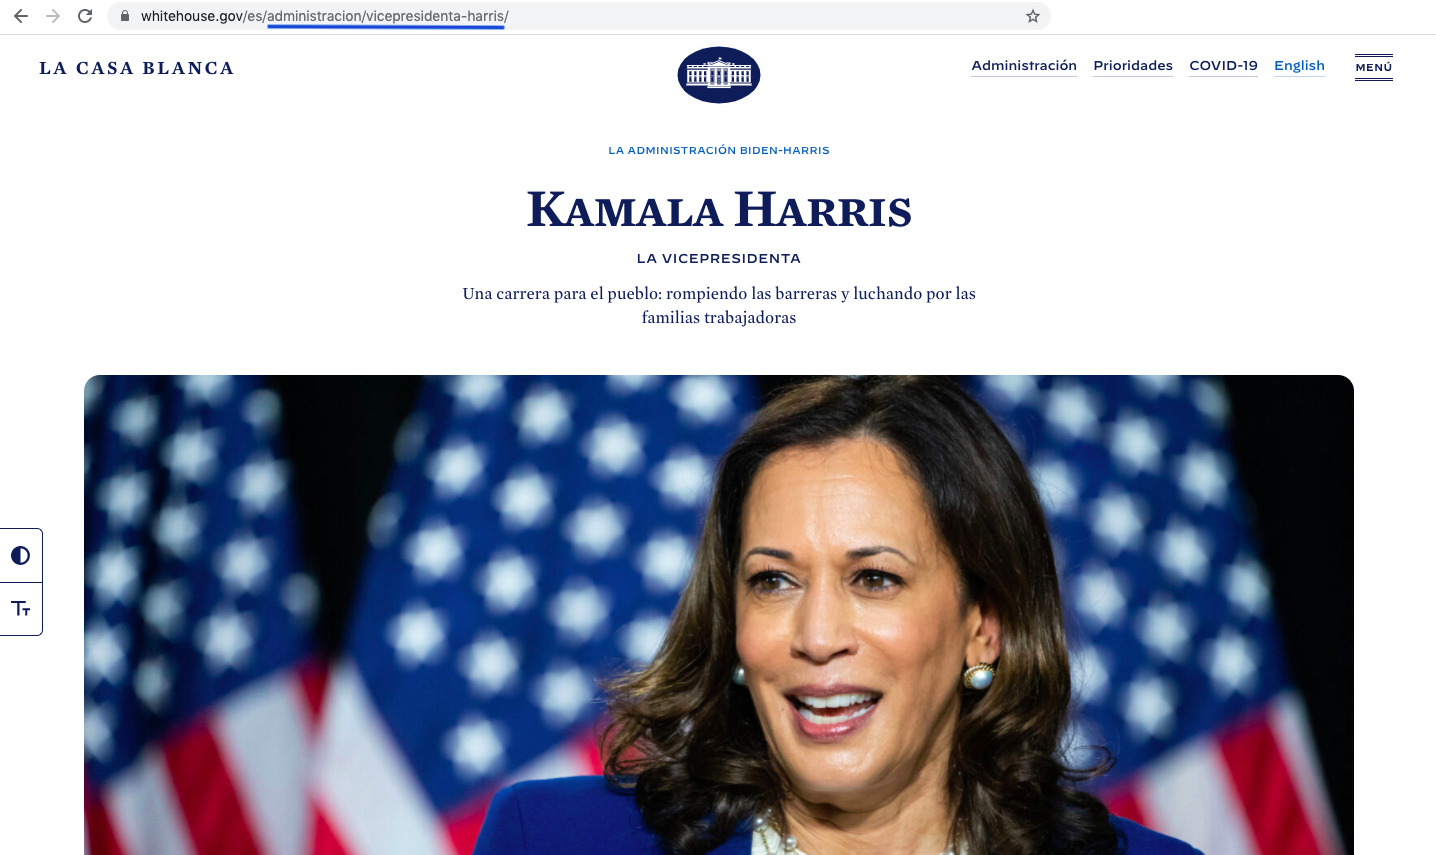 screenshot of the White House website after translation